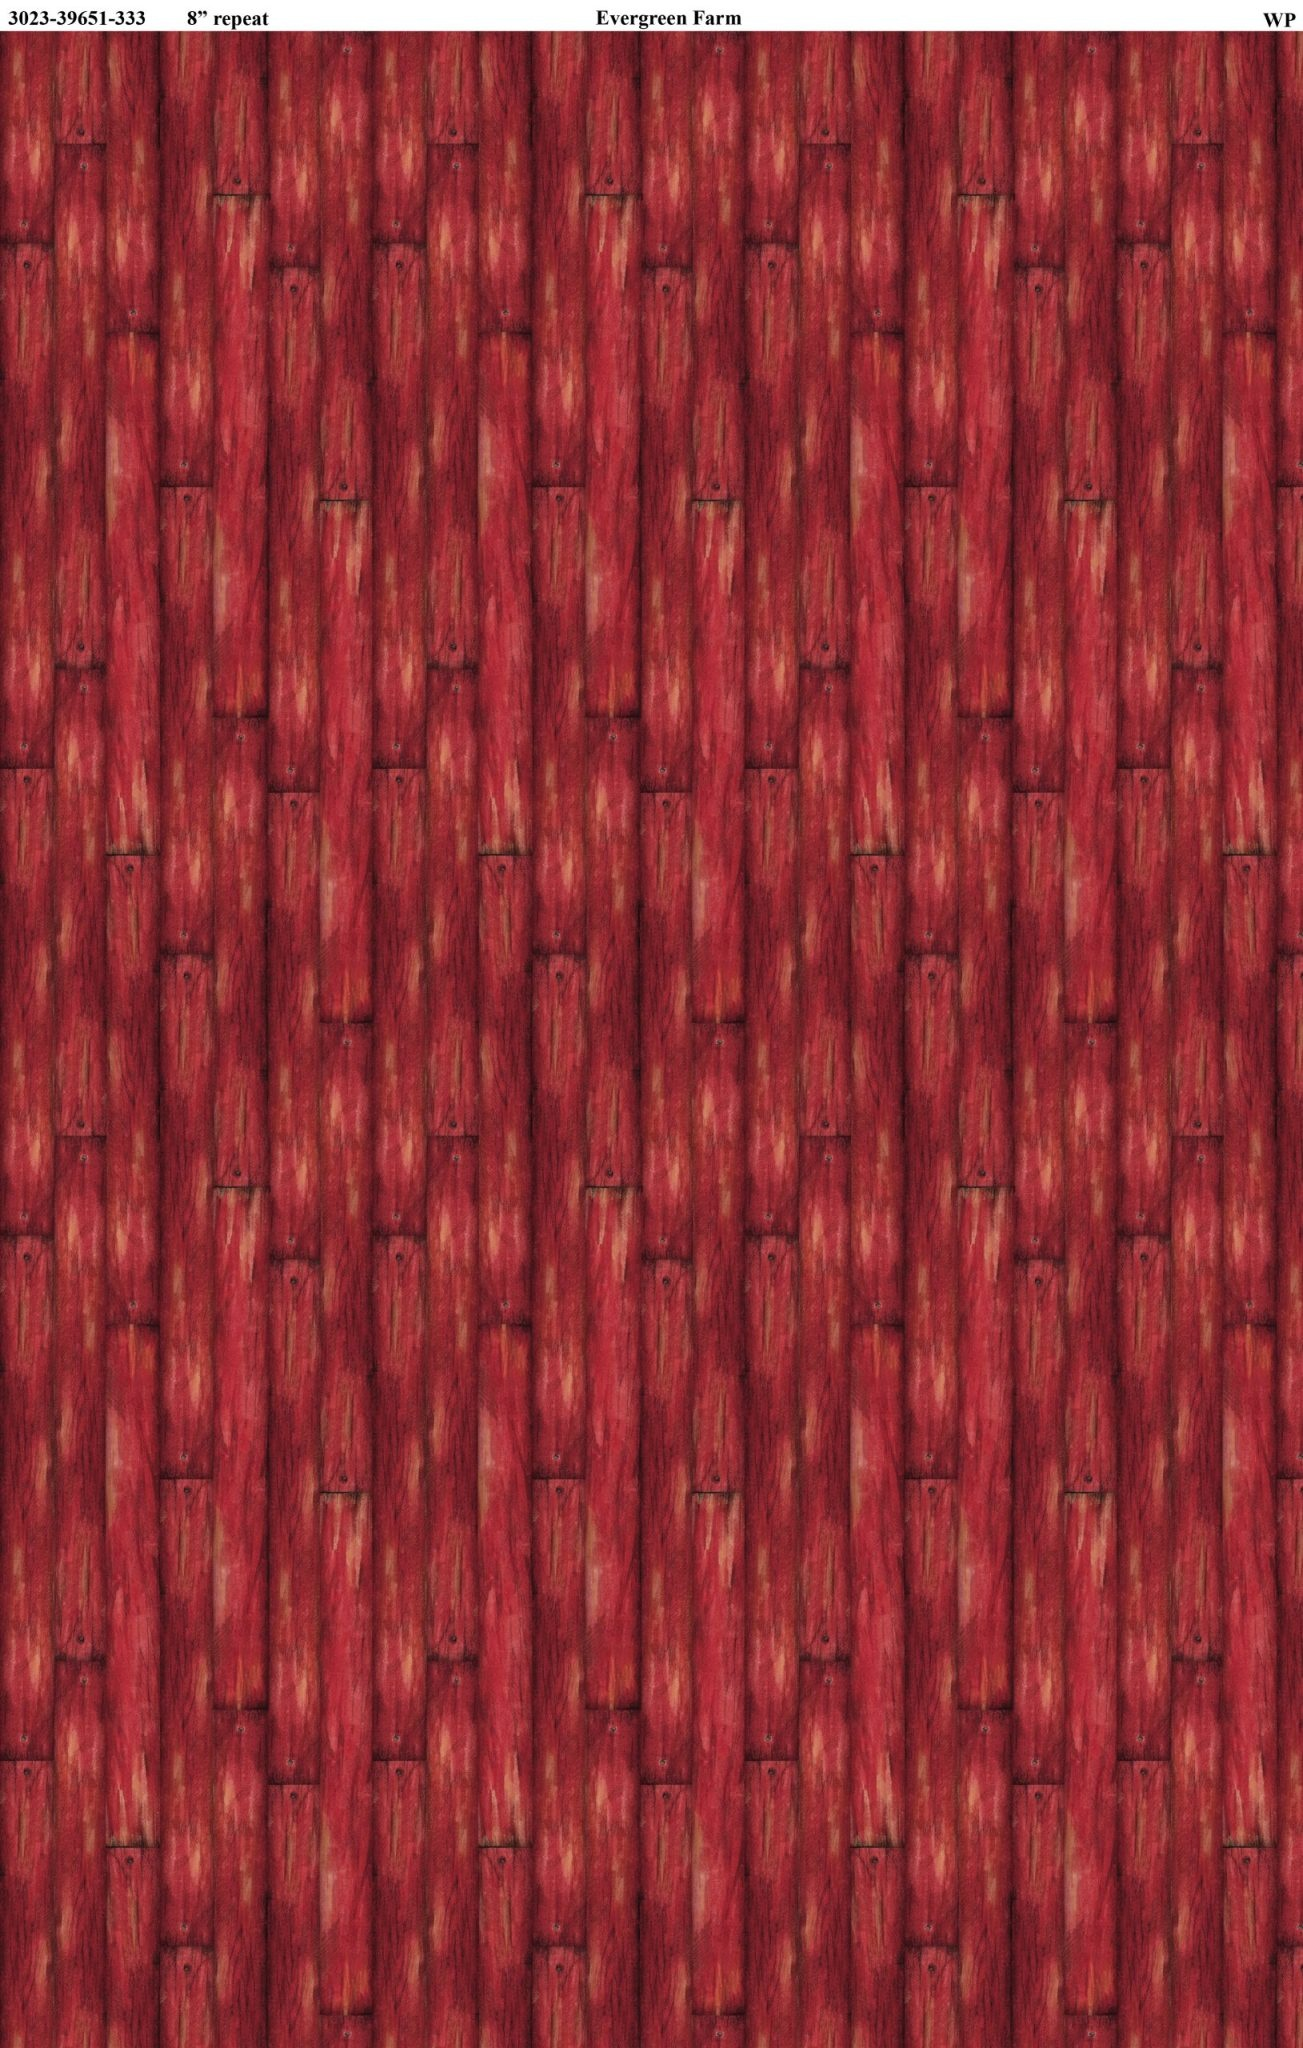 WILMINGTON PRINTS EVERGREEN FARM, BARN WOOD, RED (39651-333) PER CM OR $20M